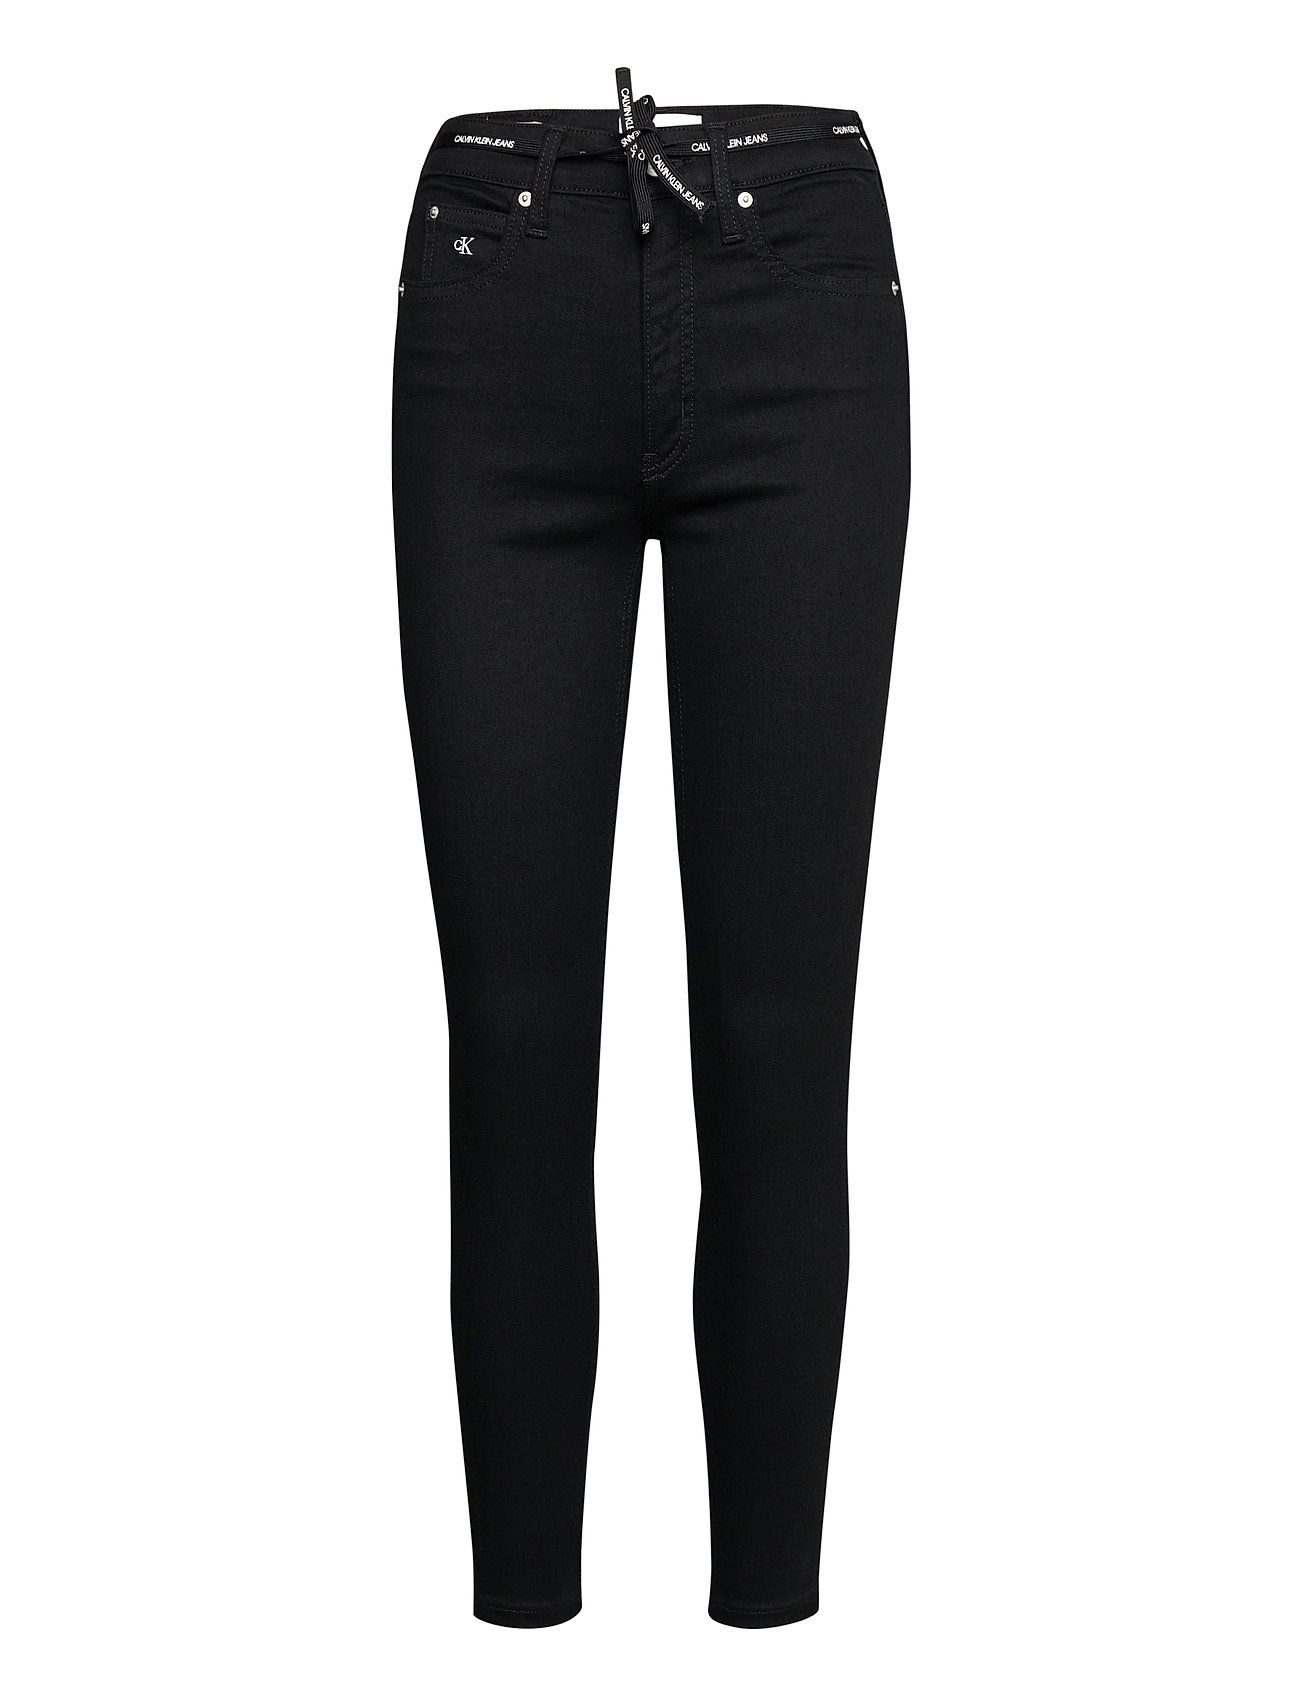 Image of High Rise Super Skinny Ankle Skinny Jeans Sort Calvin Klein Jeans (3486967895)